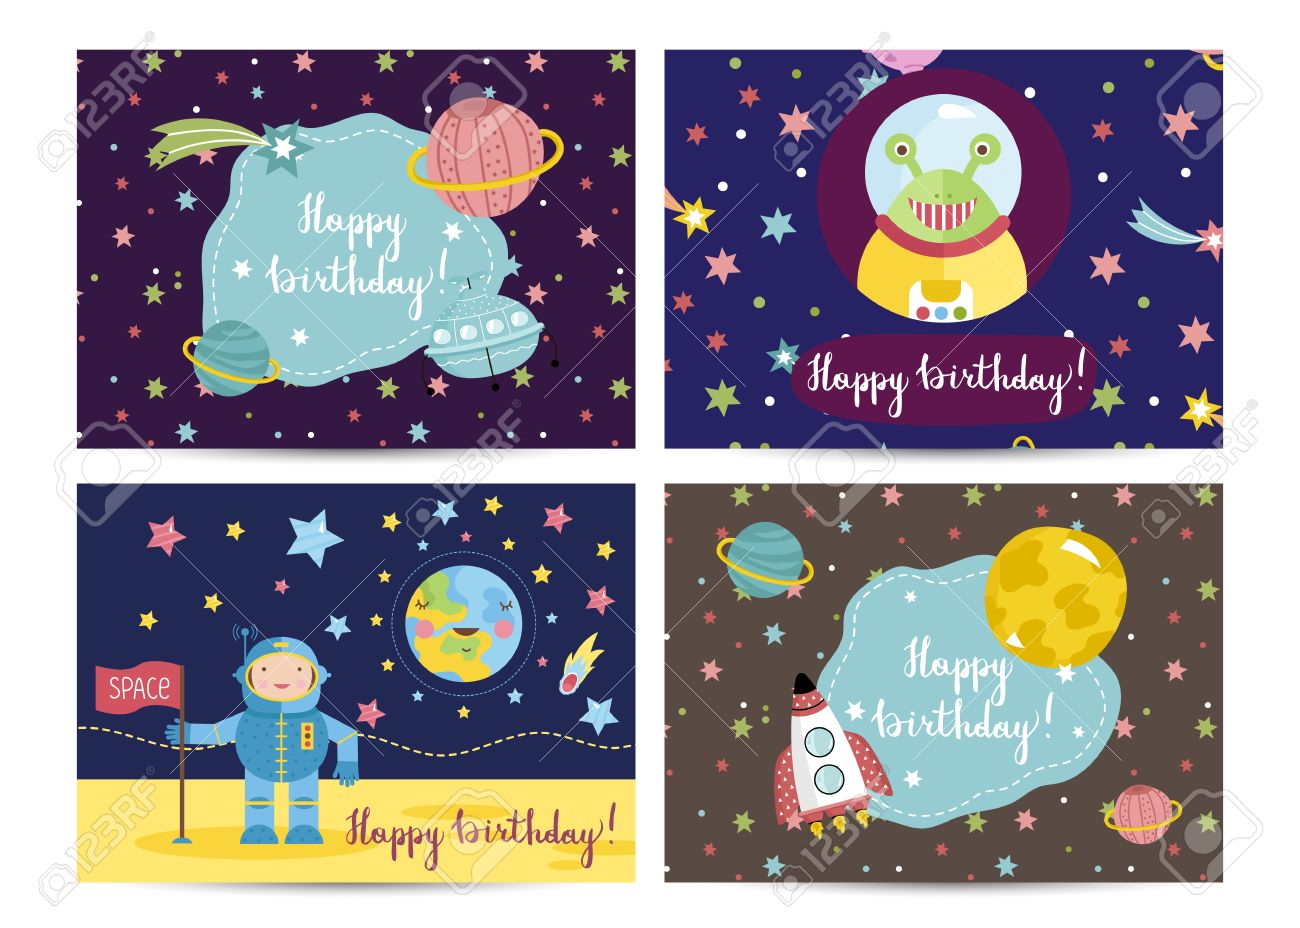 Happy Birthday Cartoon Greeting Card On Space Theme Astronaut Moon Funny Alien